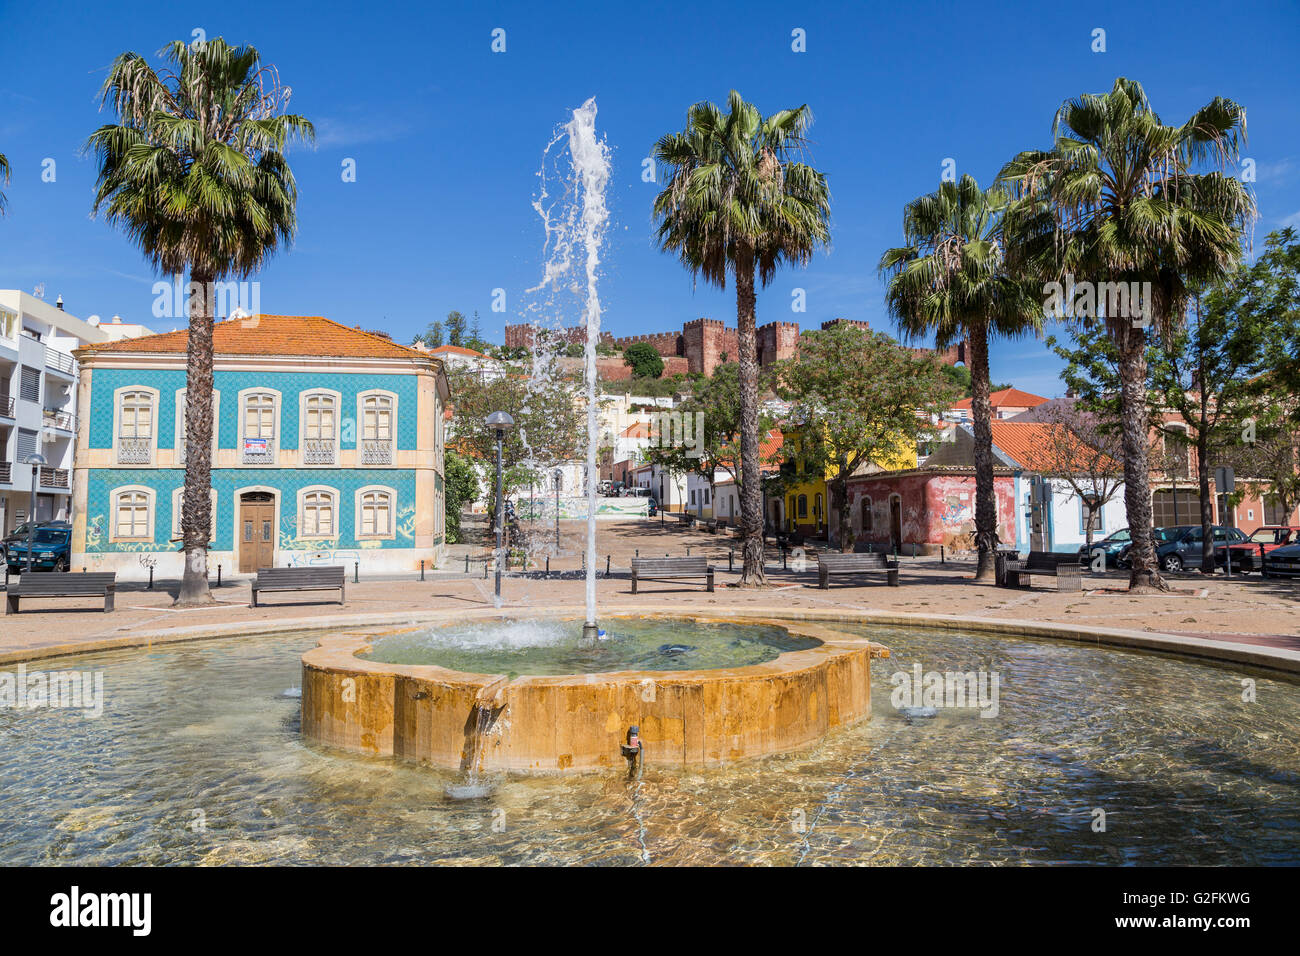 Fountain in public space with castle on skyline, Silves, Algarve, Portugal - Stock Image